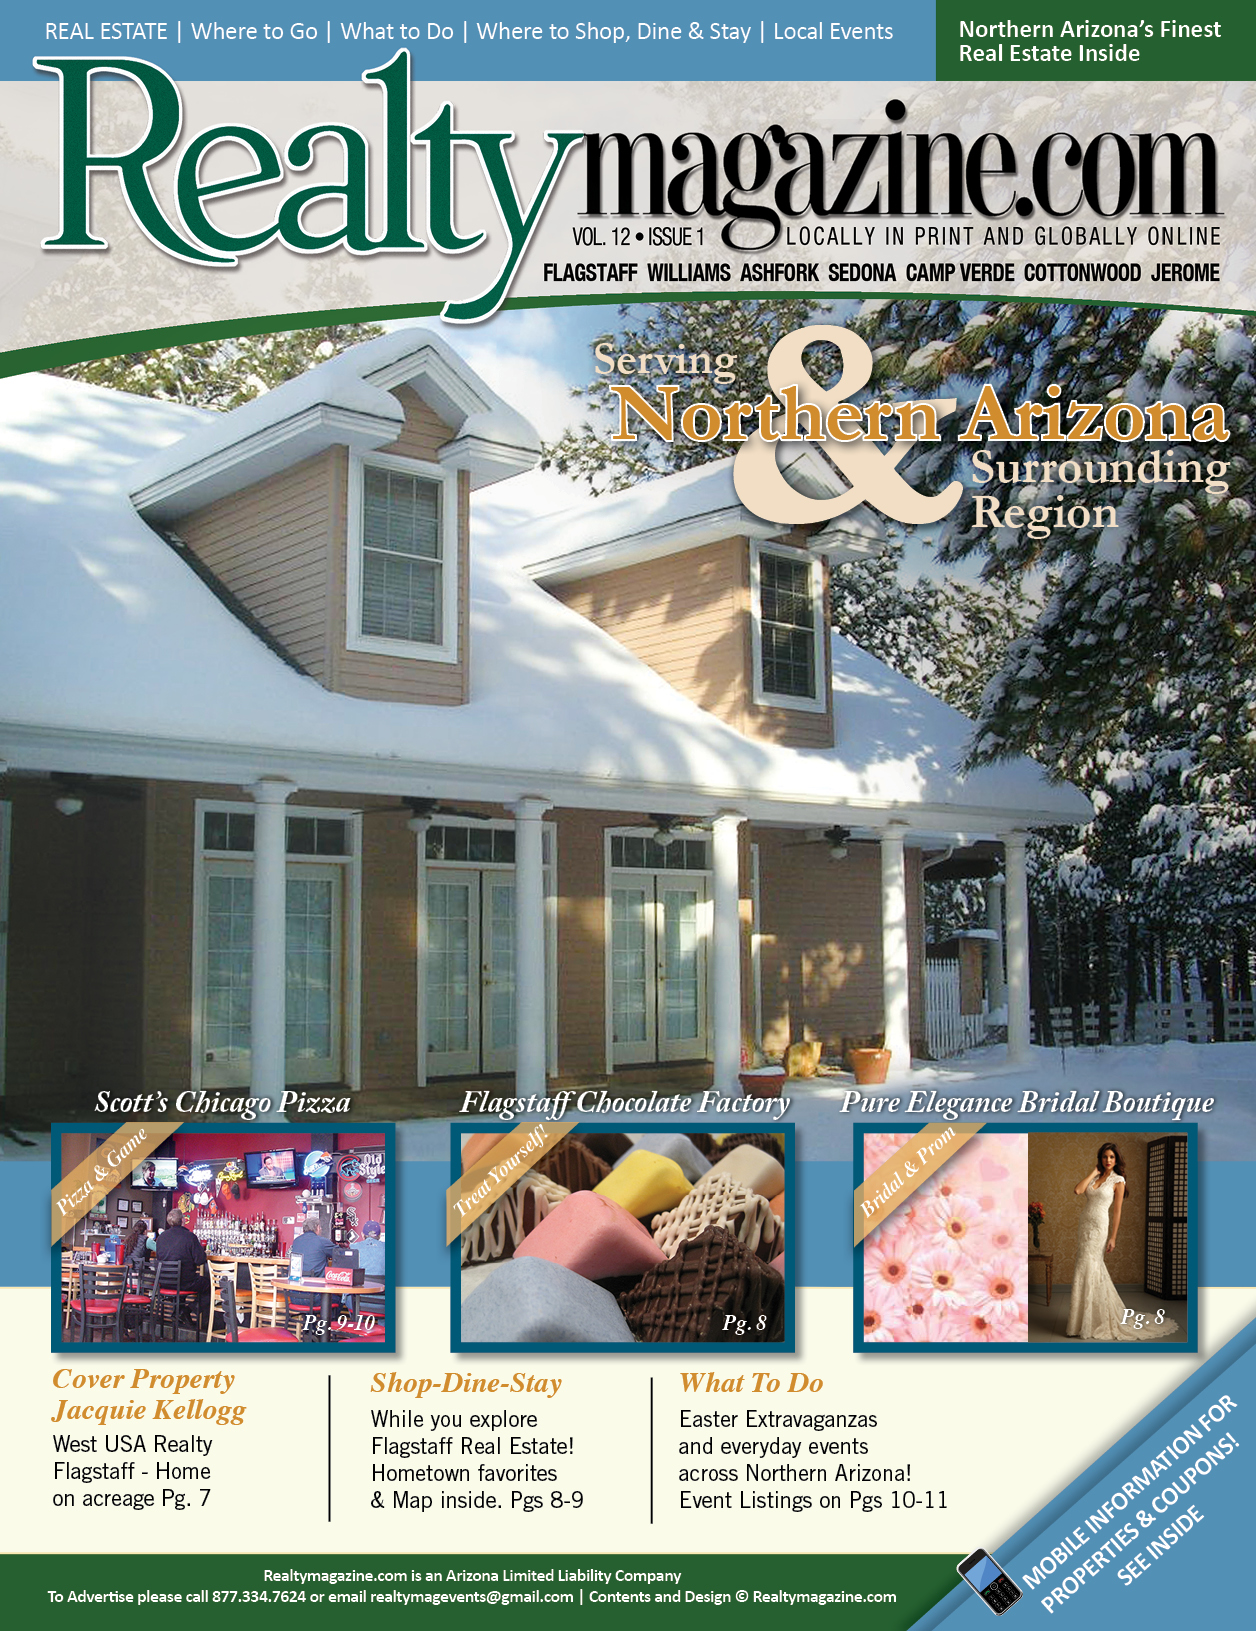 Realtymagazine.com - Flagstaff realty and Northern Arizona real estate